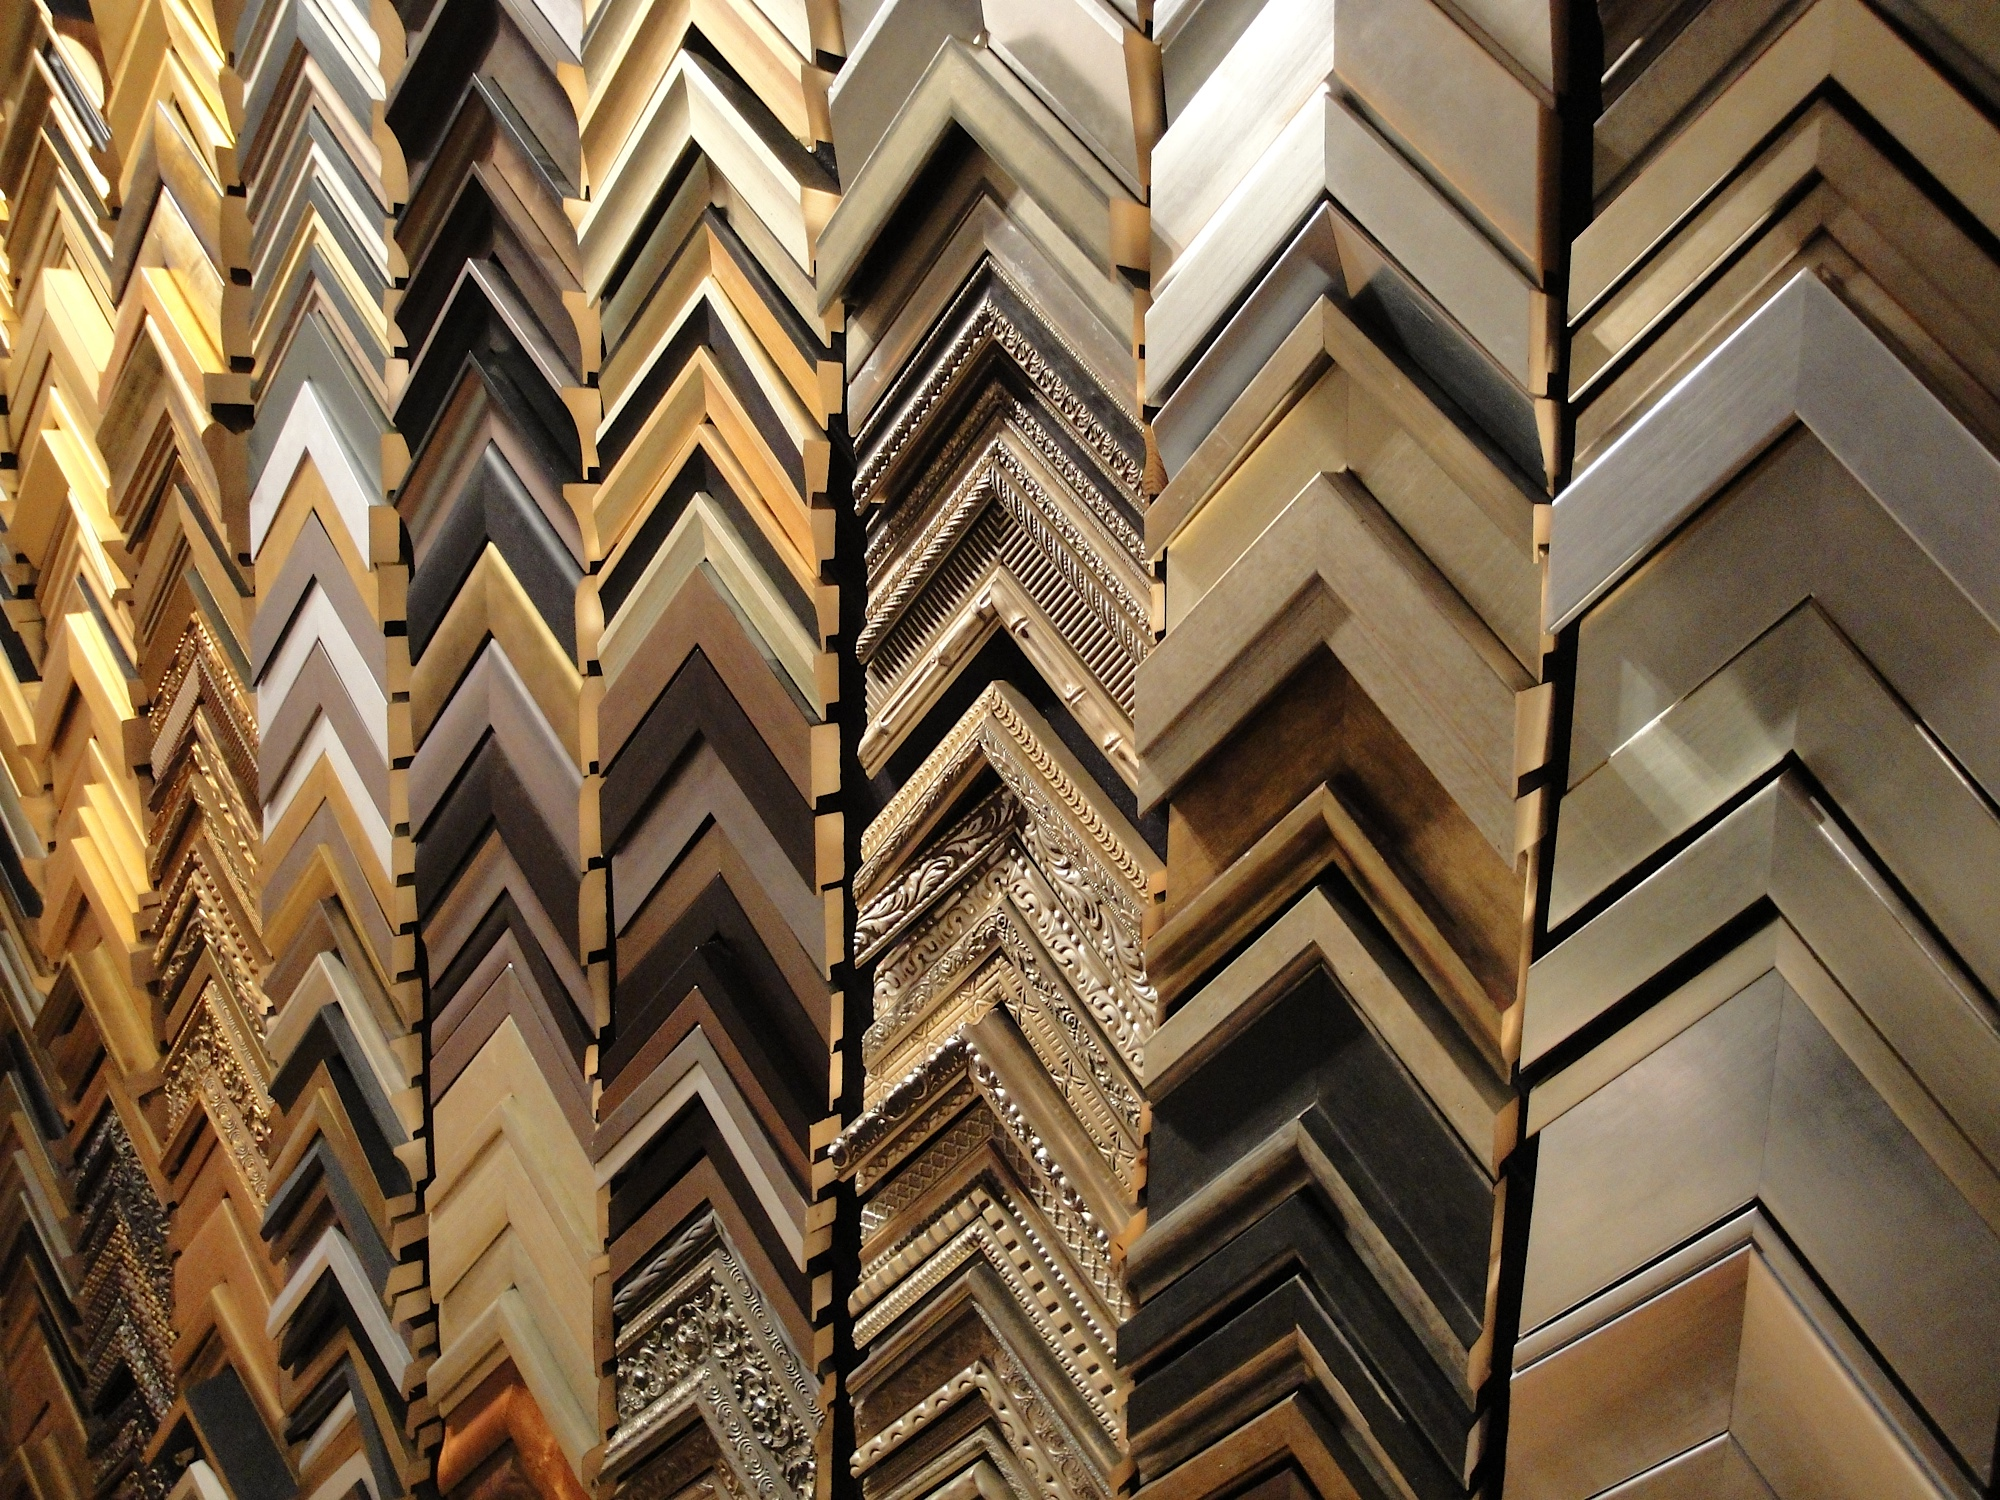 In addition to custom framing, we also provide a wide selection of ready made table top frames from Roma Moulding